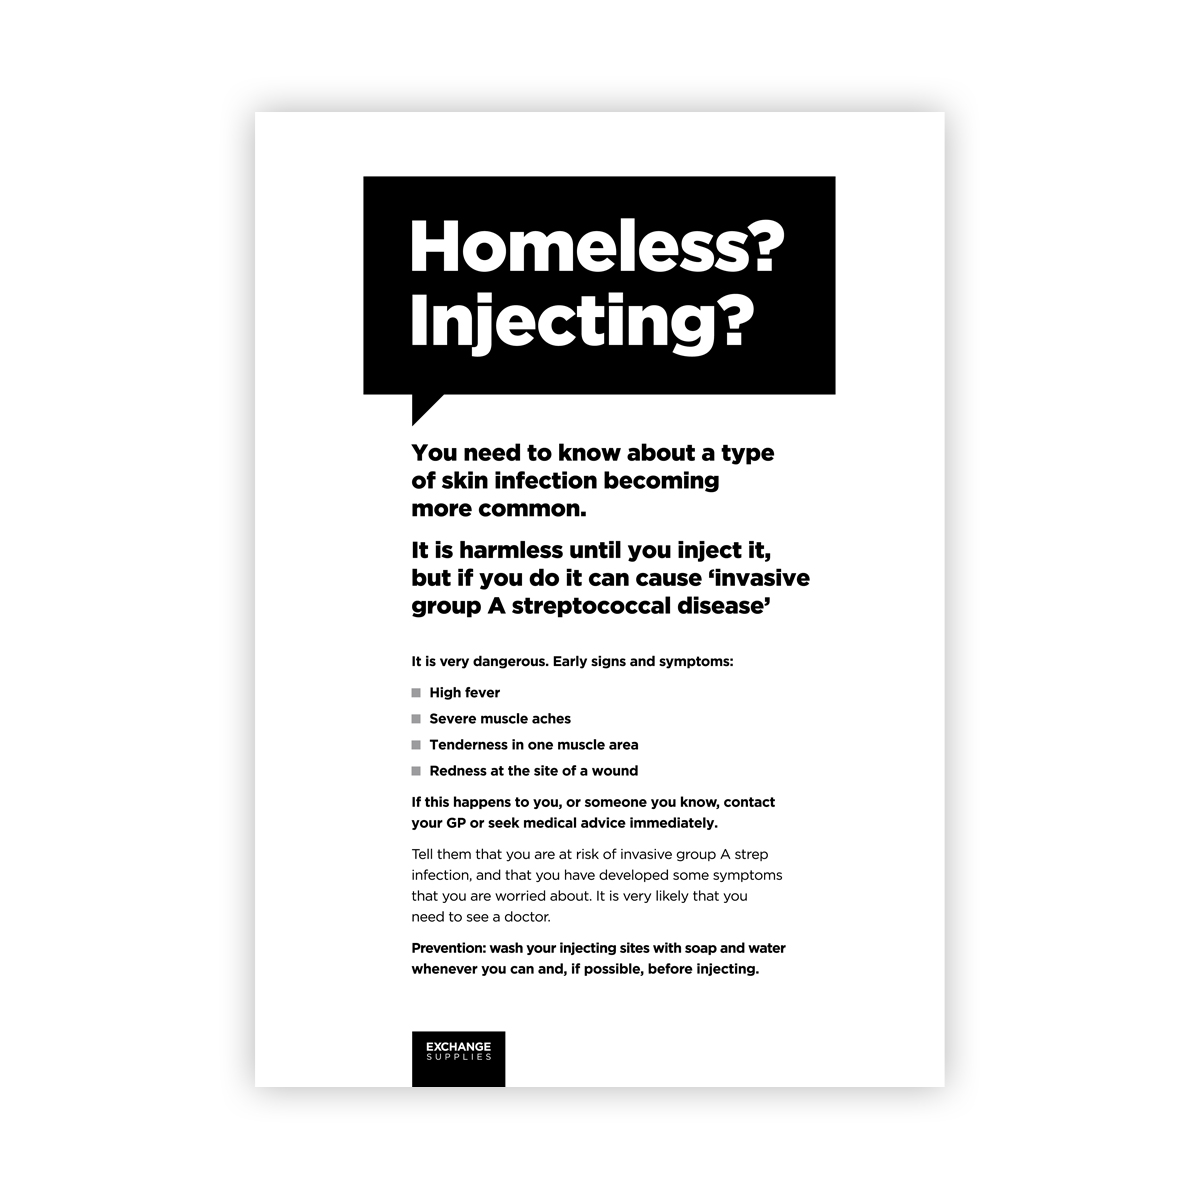 Poster for homeless injectors